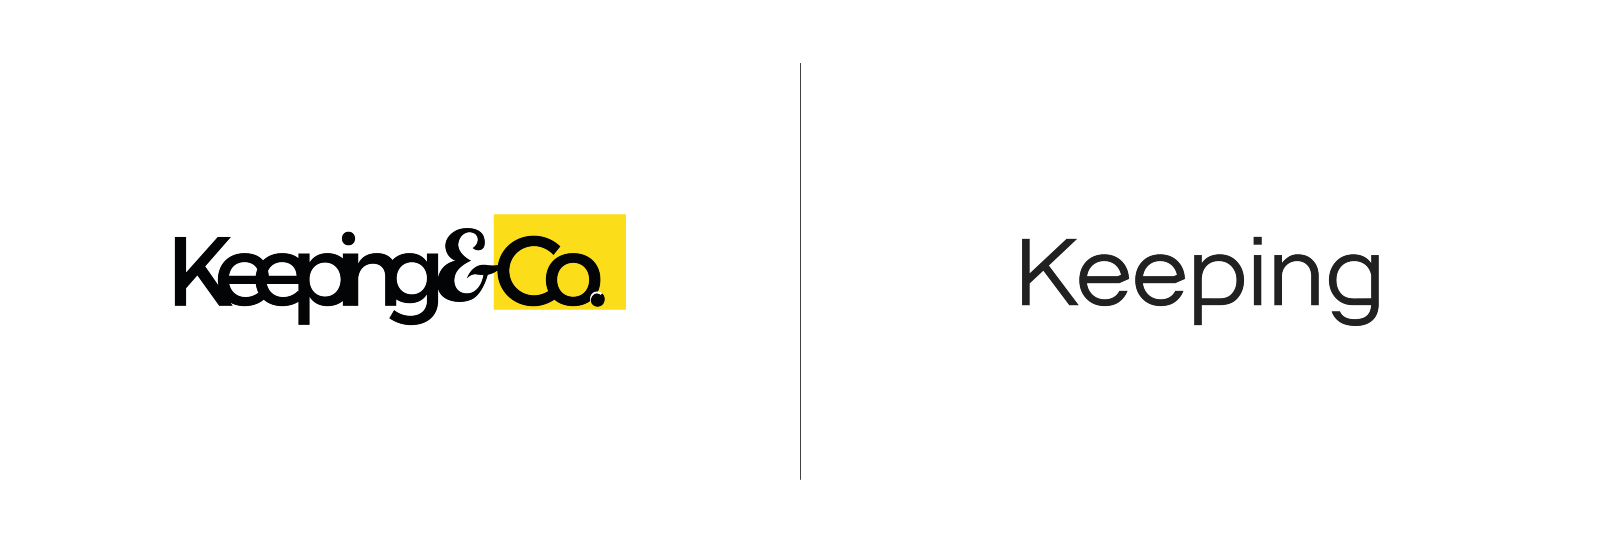 Keeping&Co. has revealed a new brand identity for 2018; pivoting their focus and creating a new vision for the studio, which involves a more quality driven and creative future — inline with their new look as 'Keeping'.